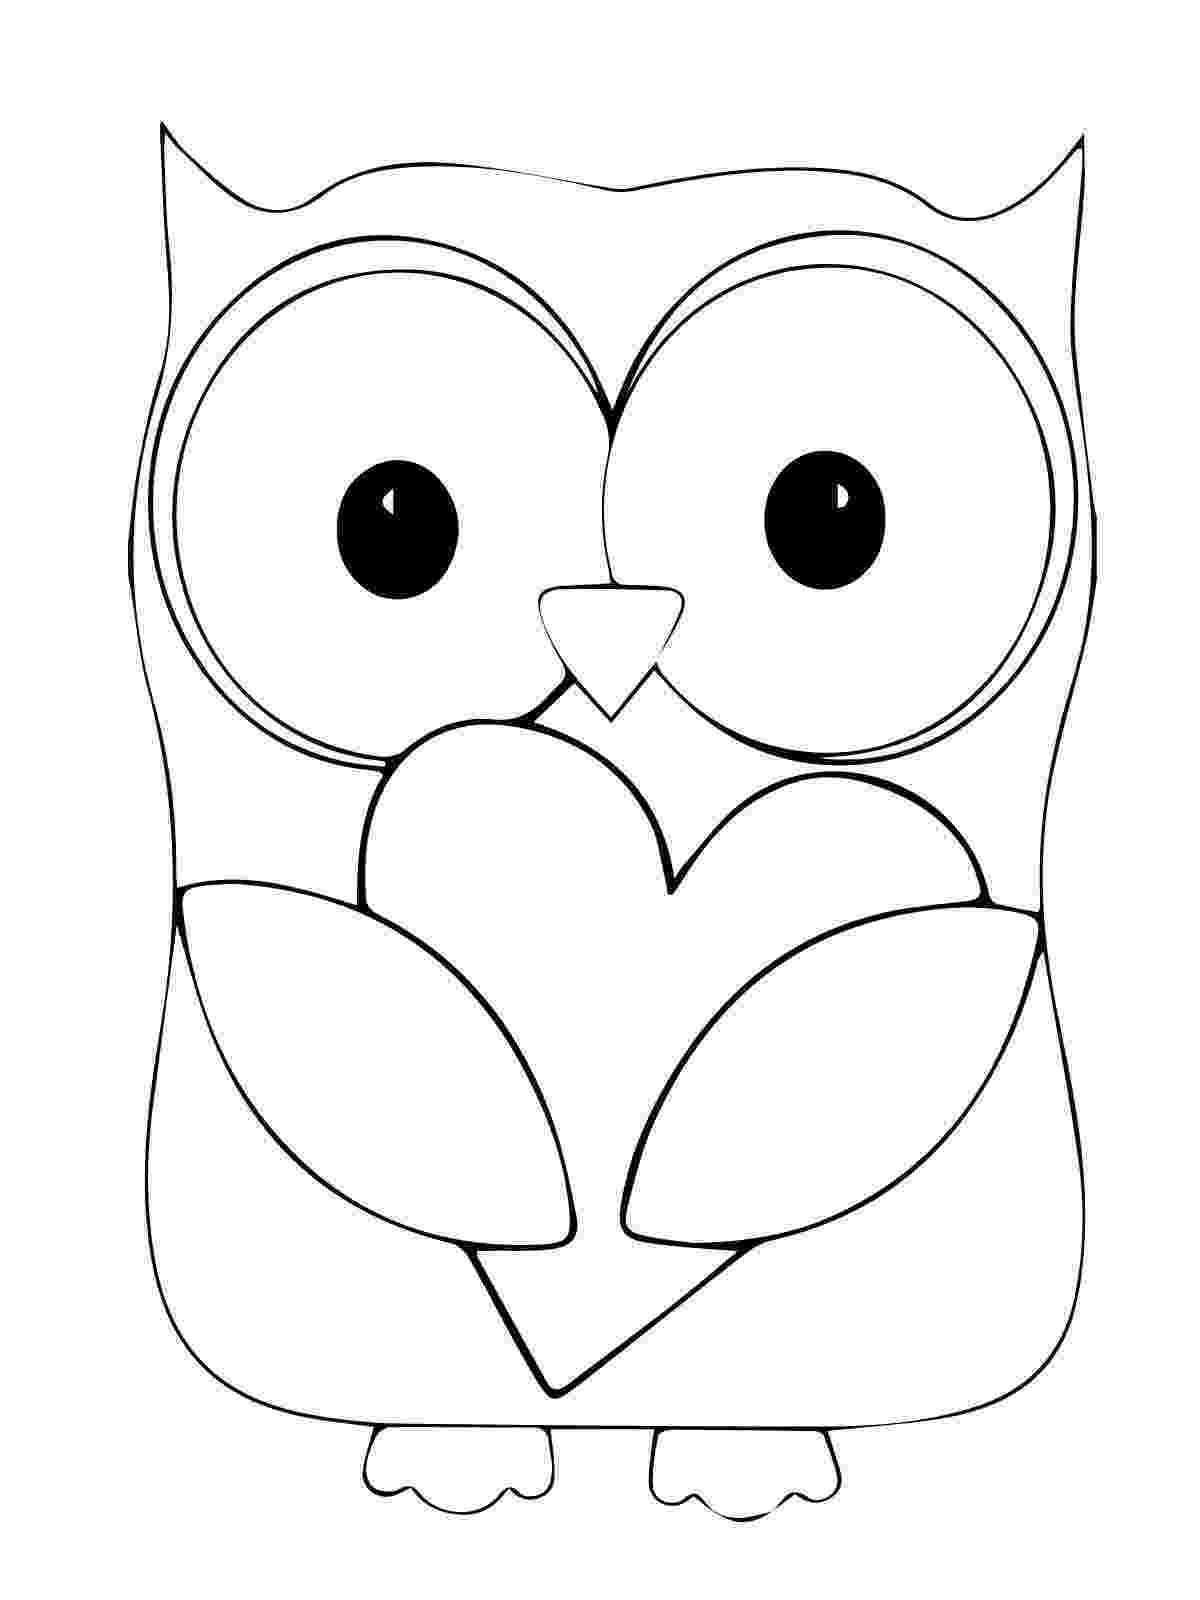 colouring pictures of owls baby owls coloring sheet to print pictures of colouring owls